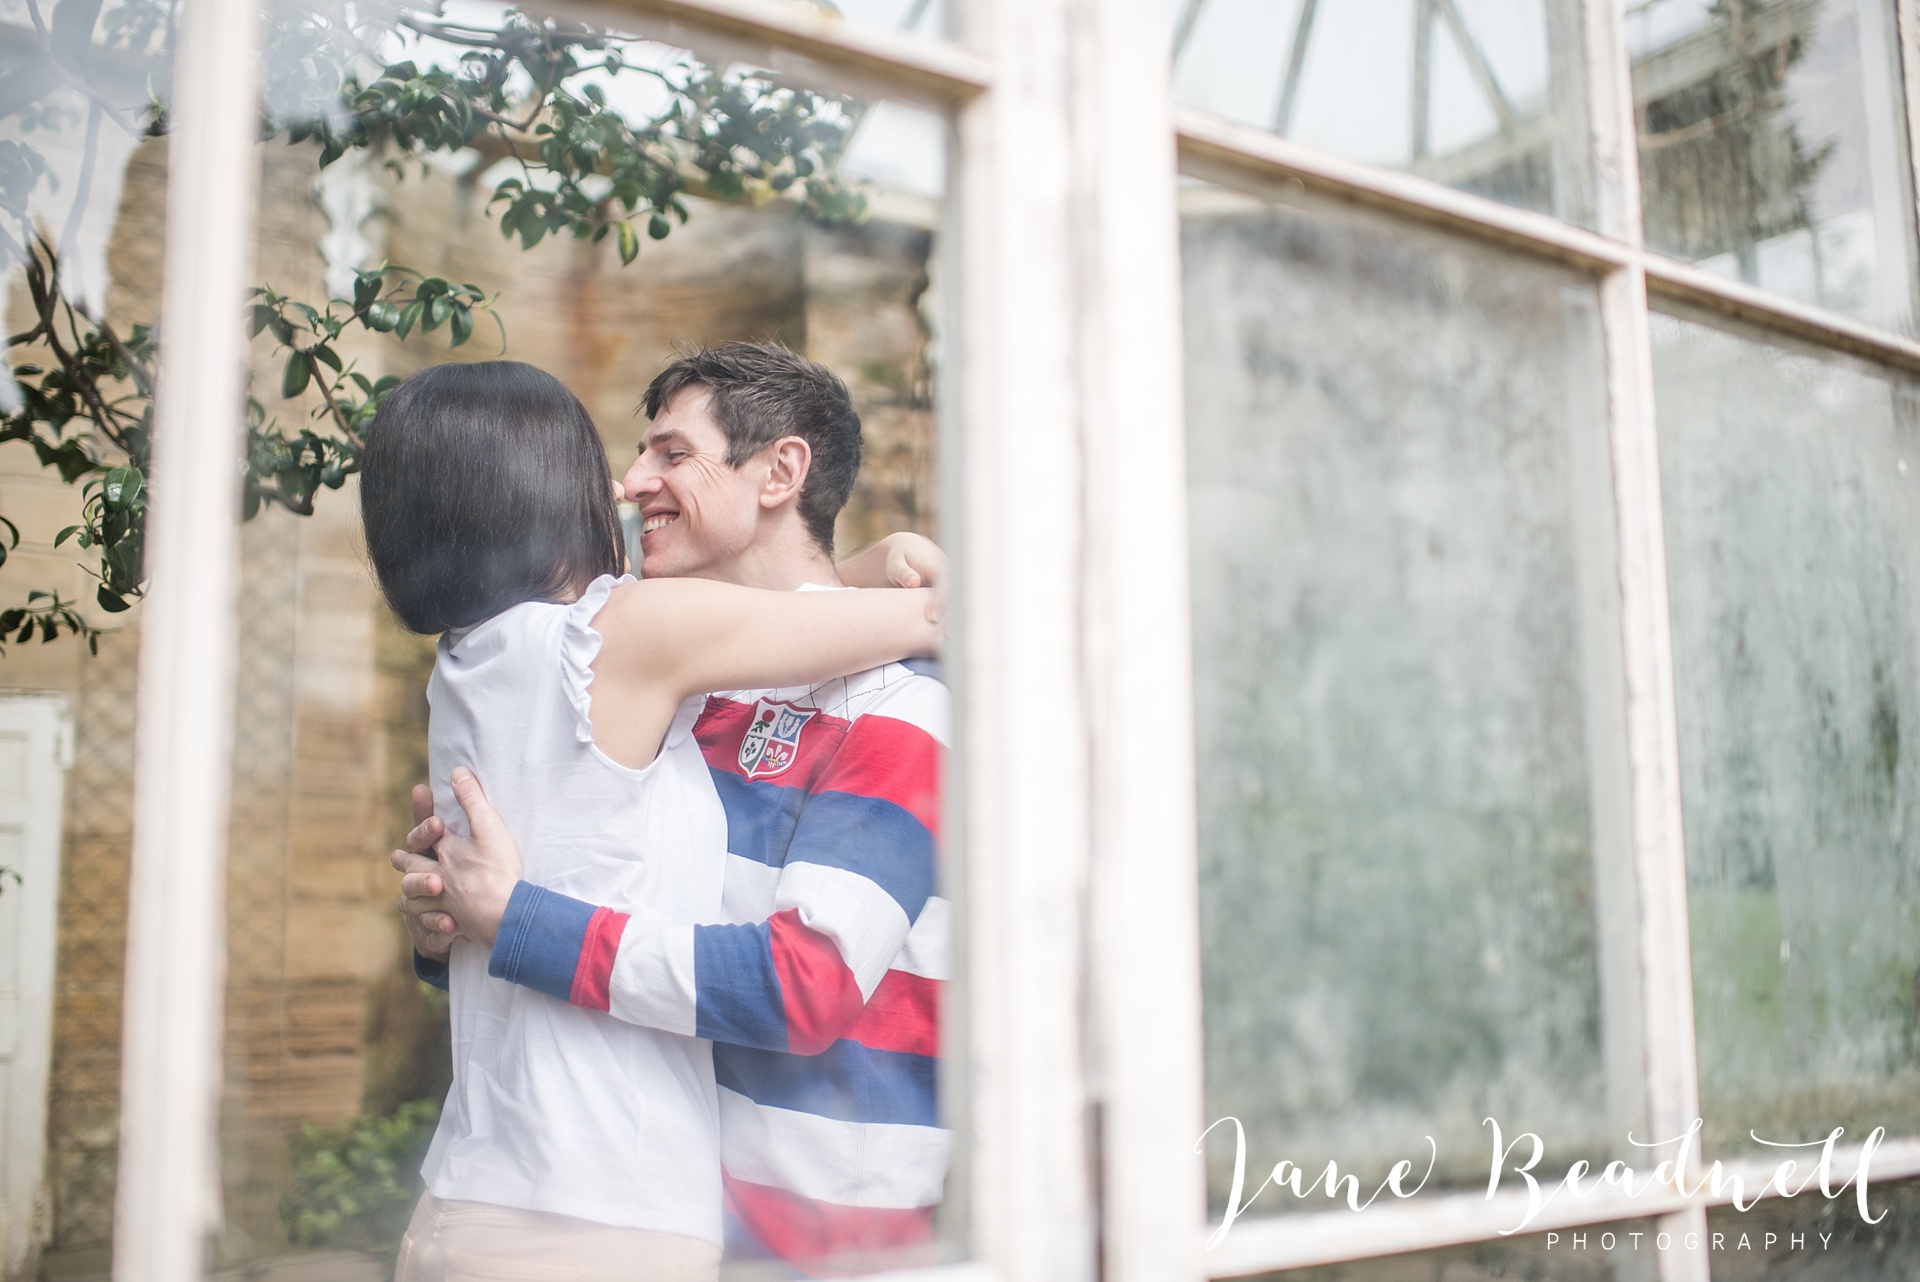 Yorkshire Sculpture Park Engagement Shoot Leeds wedding photographer Jane Beadnell_0028